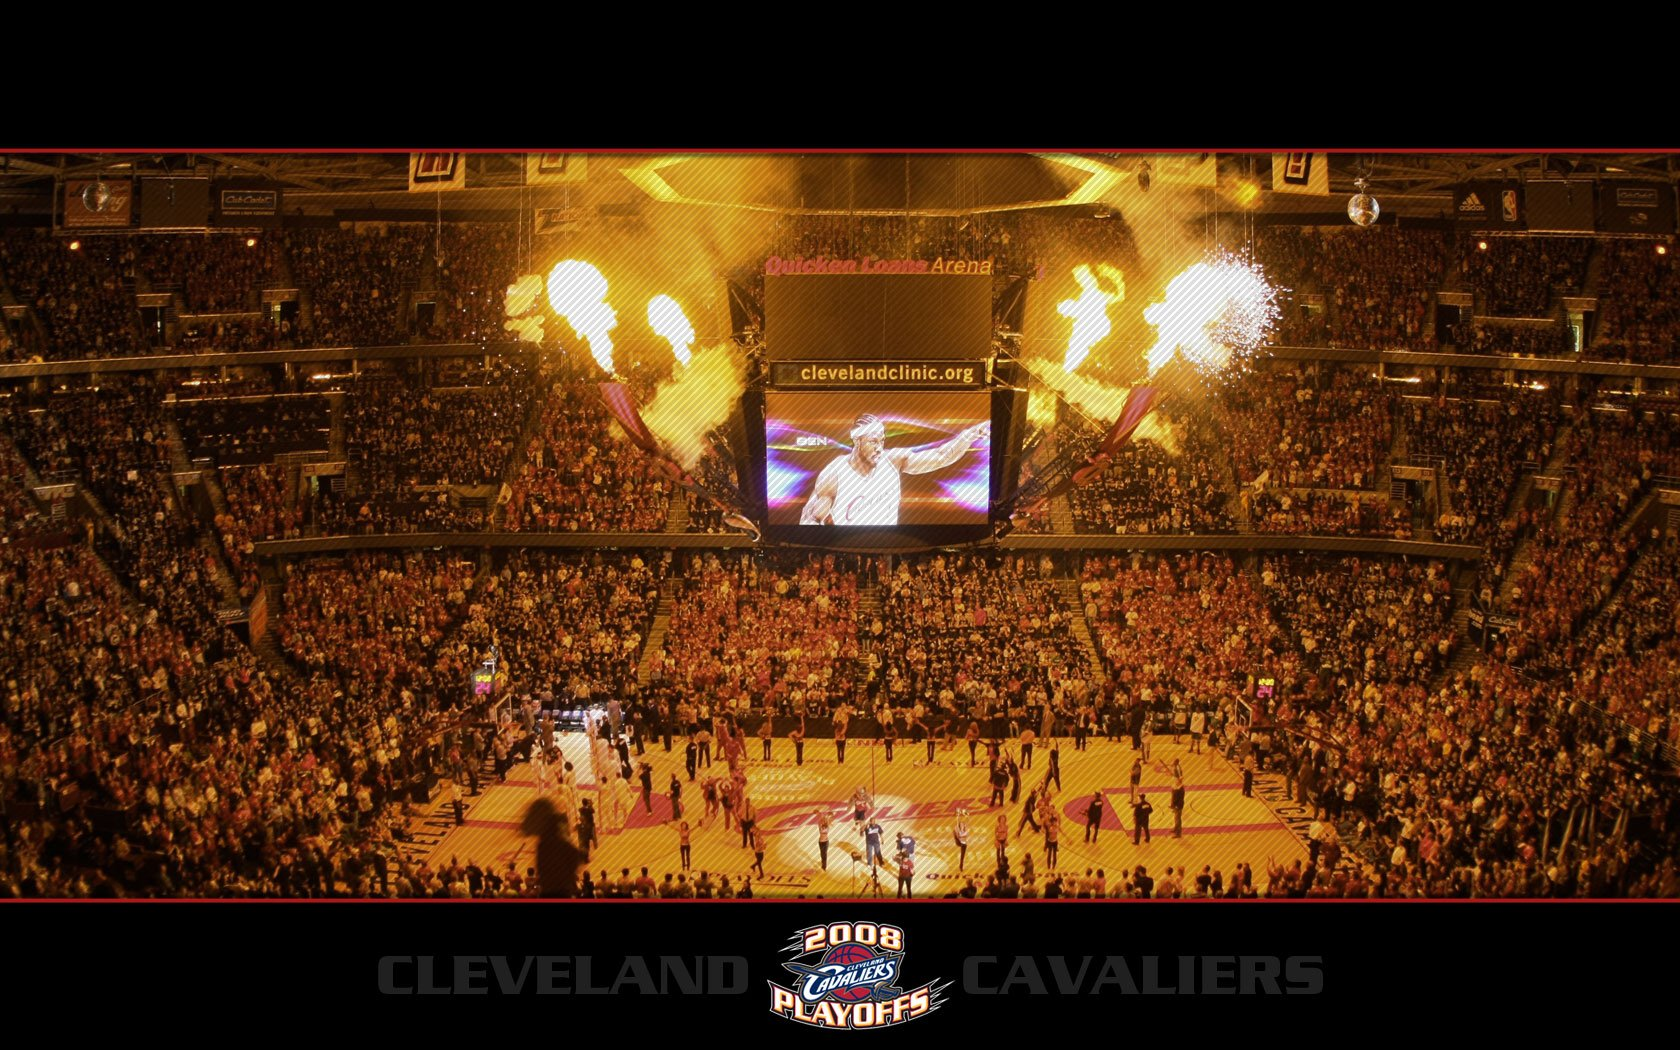 Cleveland Cavaliers NBA wallaper Cleveland Cavaliers NBA picture 1680x1050